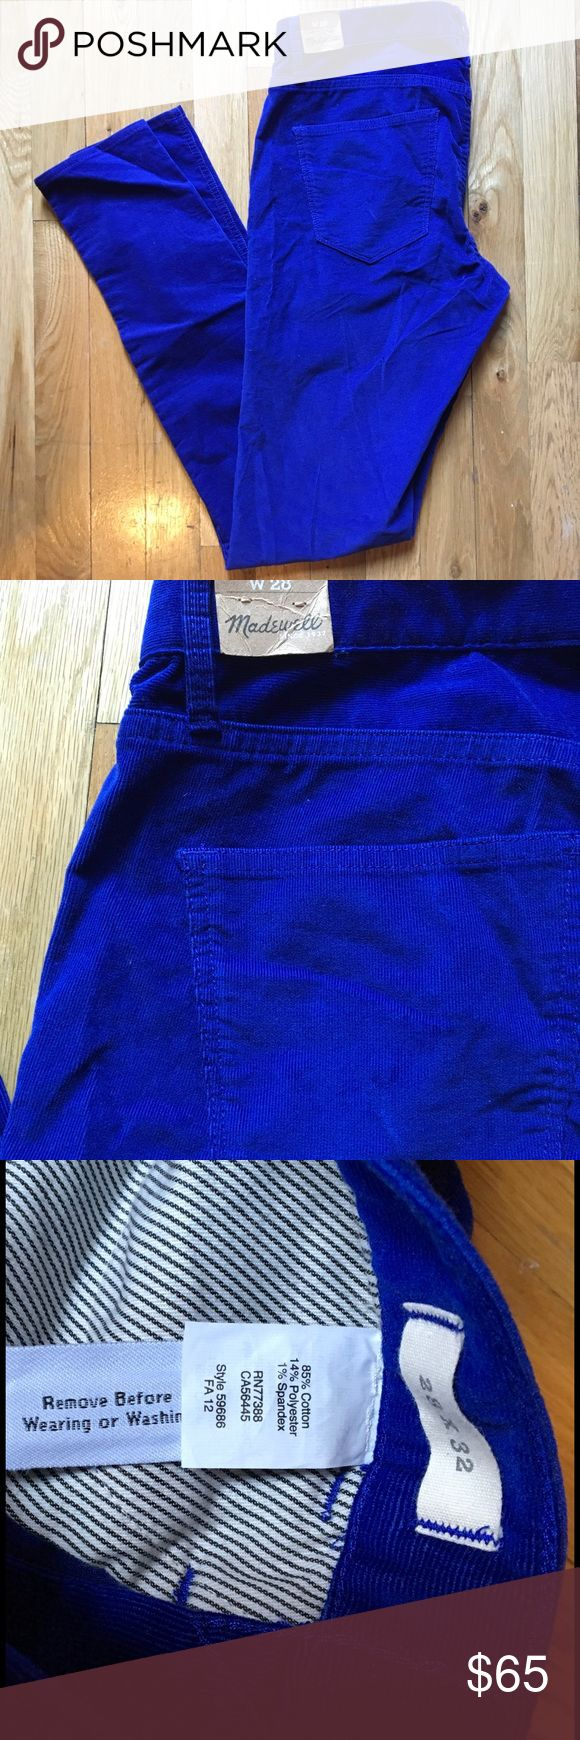 "NWT Madewell Royal Blue Corduroy Jeans Pants Madewell NWT royal blue cords with no price tag but butt tag attached because they haven't been worn! Size 28 and have an inseam of 32"". Straight style and are super beautiful! Madewell Jeans"